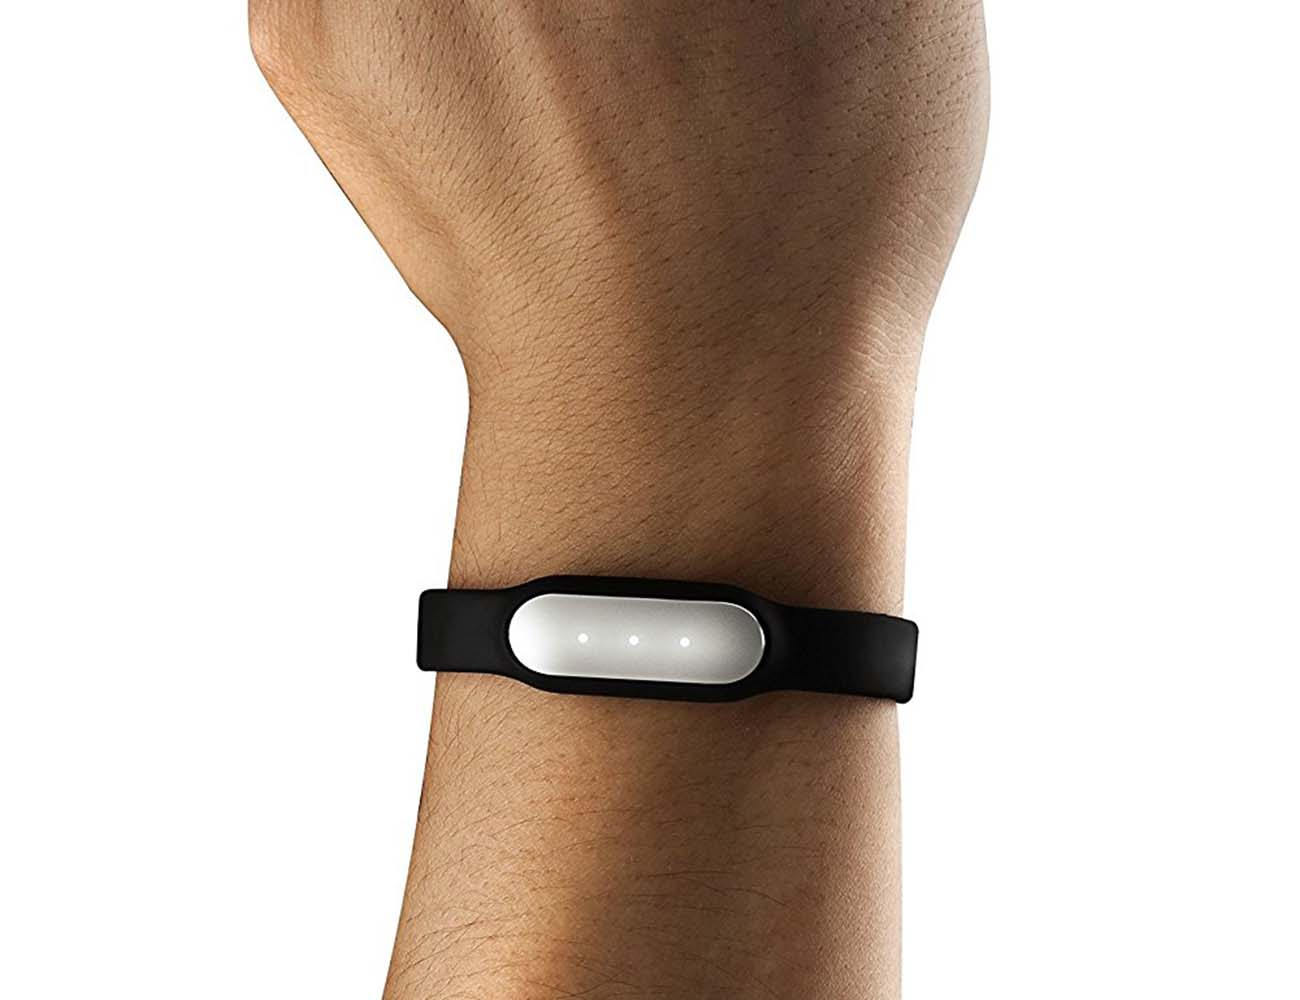 Xiaomi Mi Band – With an Optical Heart Rate Sensor